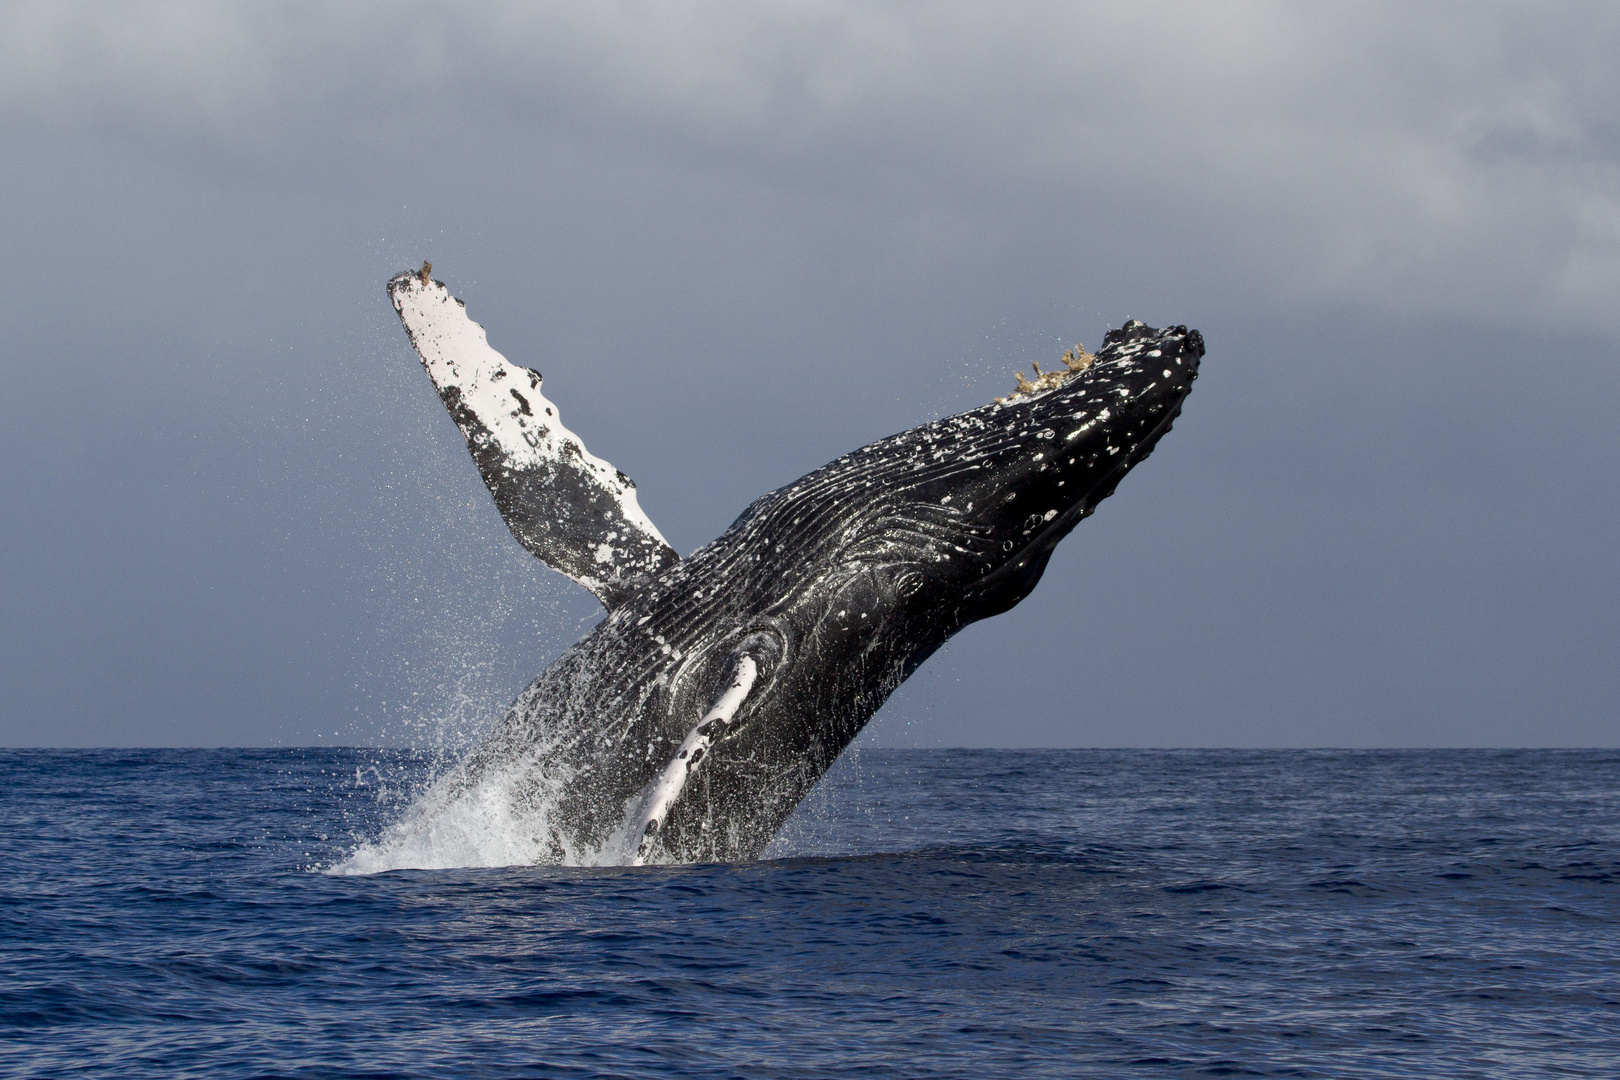 JUMPING HUMPBACKED WHALE